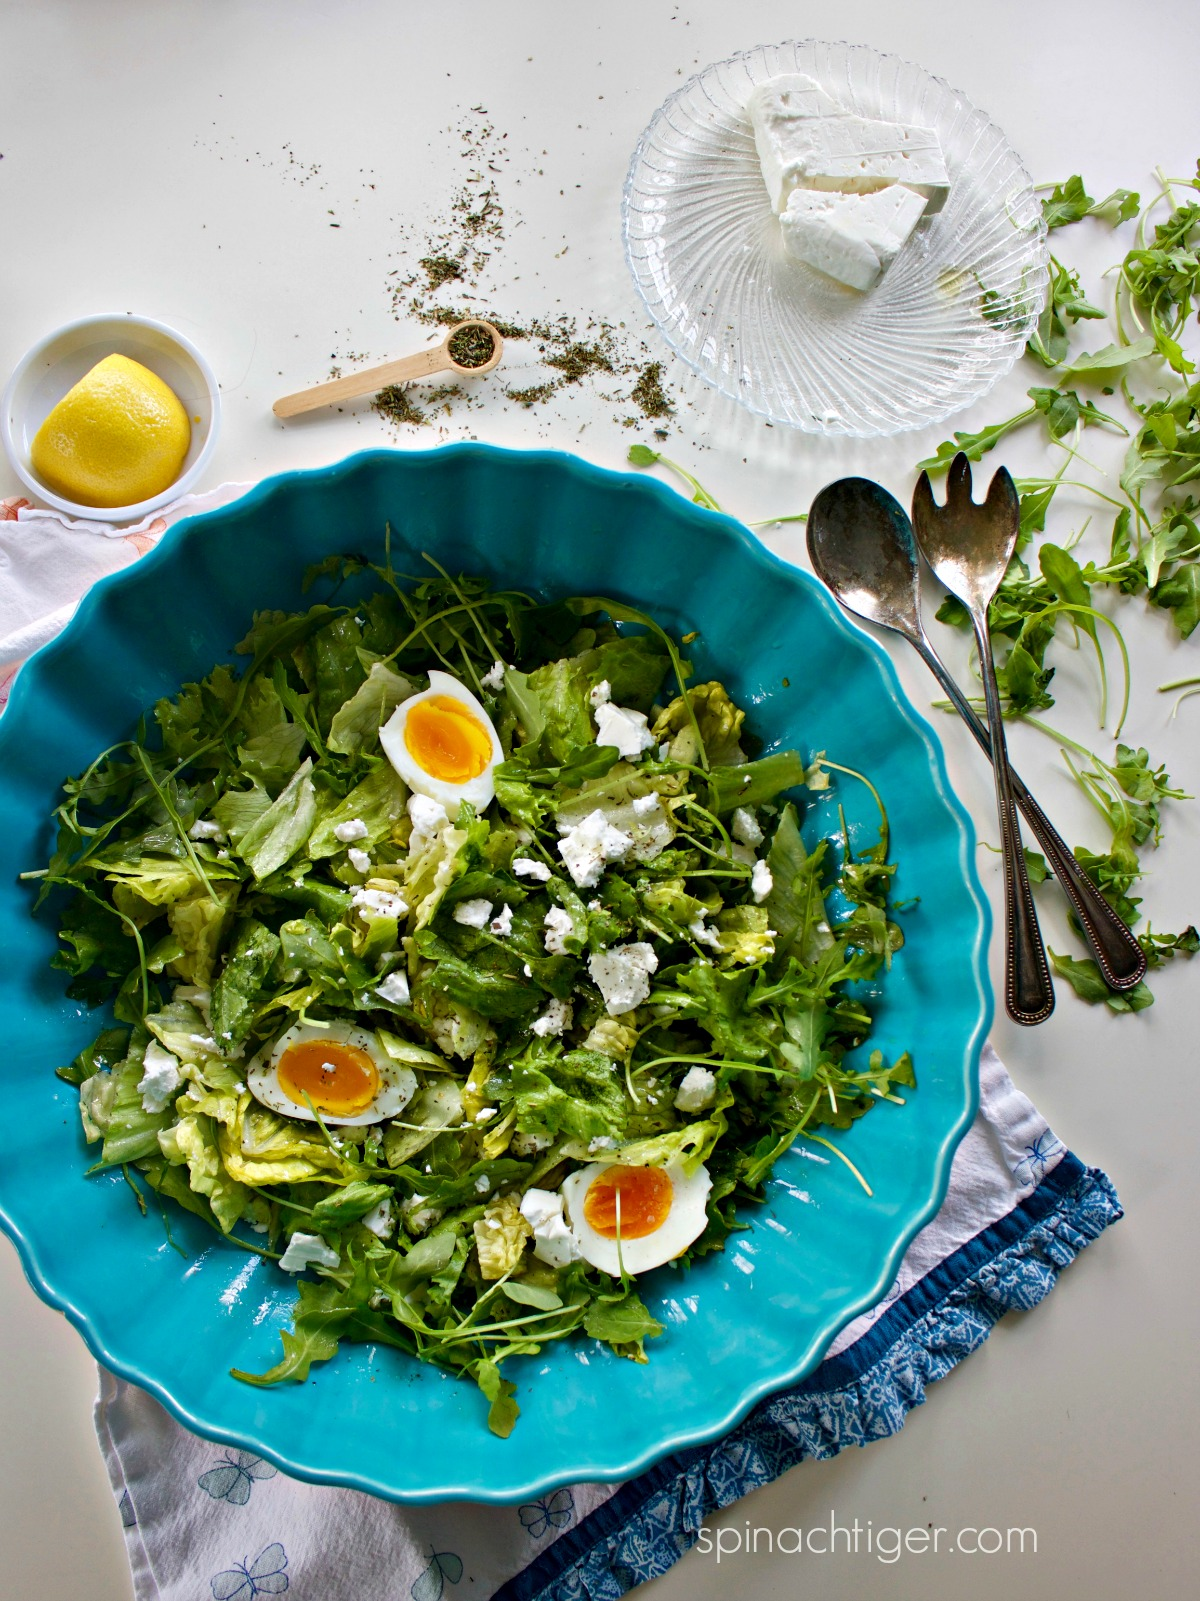 Green Salad Lemon Vinaigrette Recipe with Hard Soft Boiled Eggs from Spinach Tiger